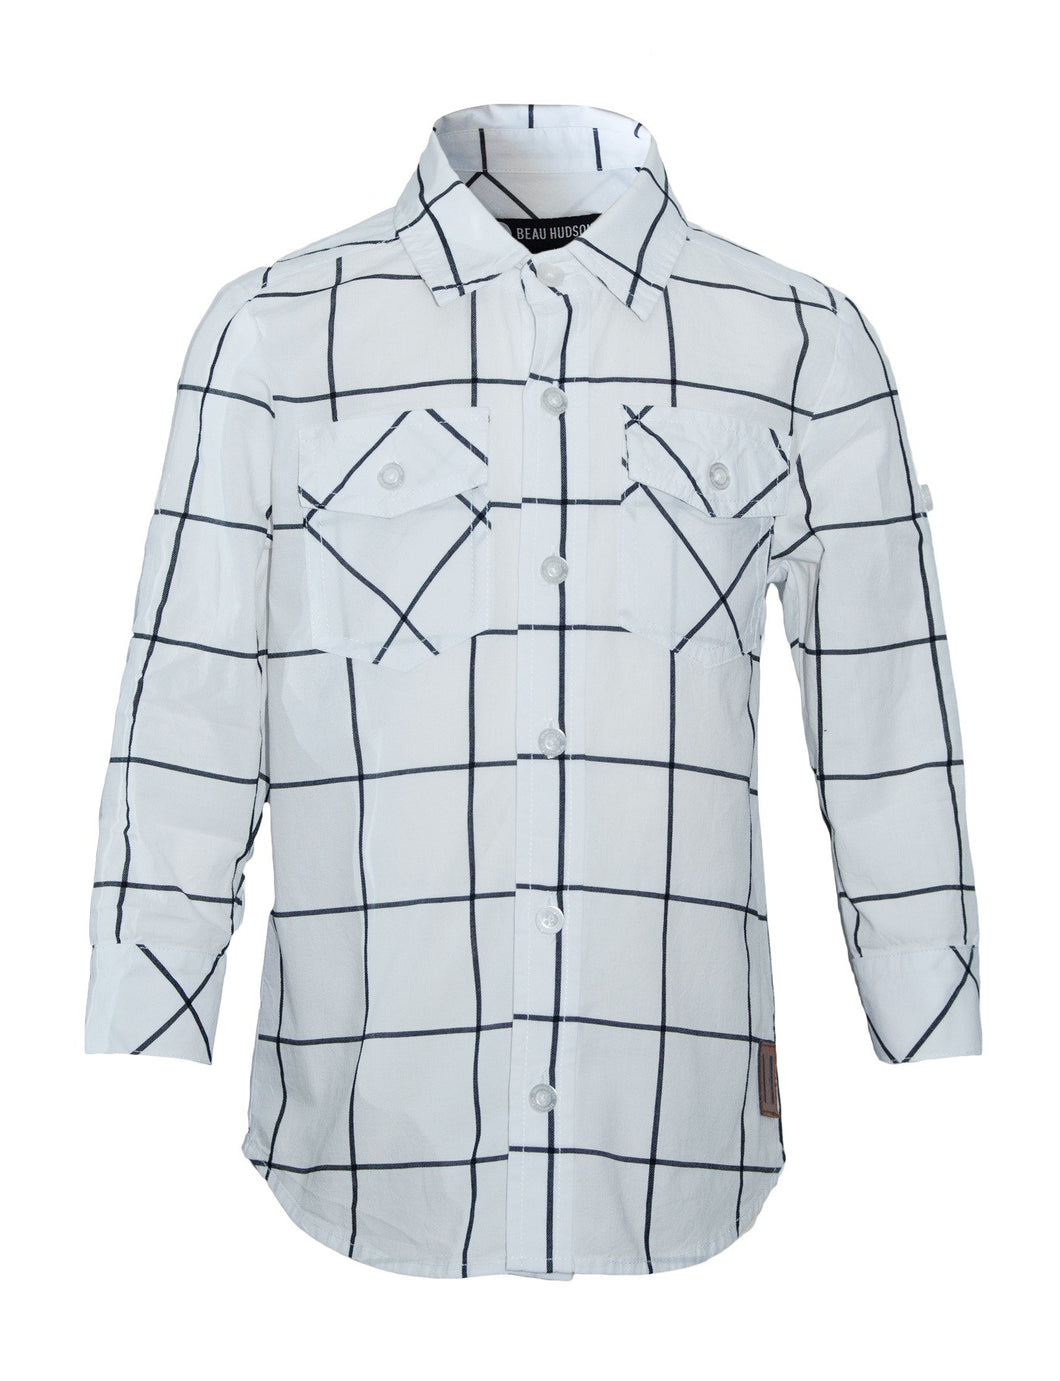 Grid Button Up